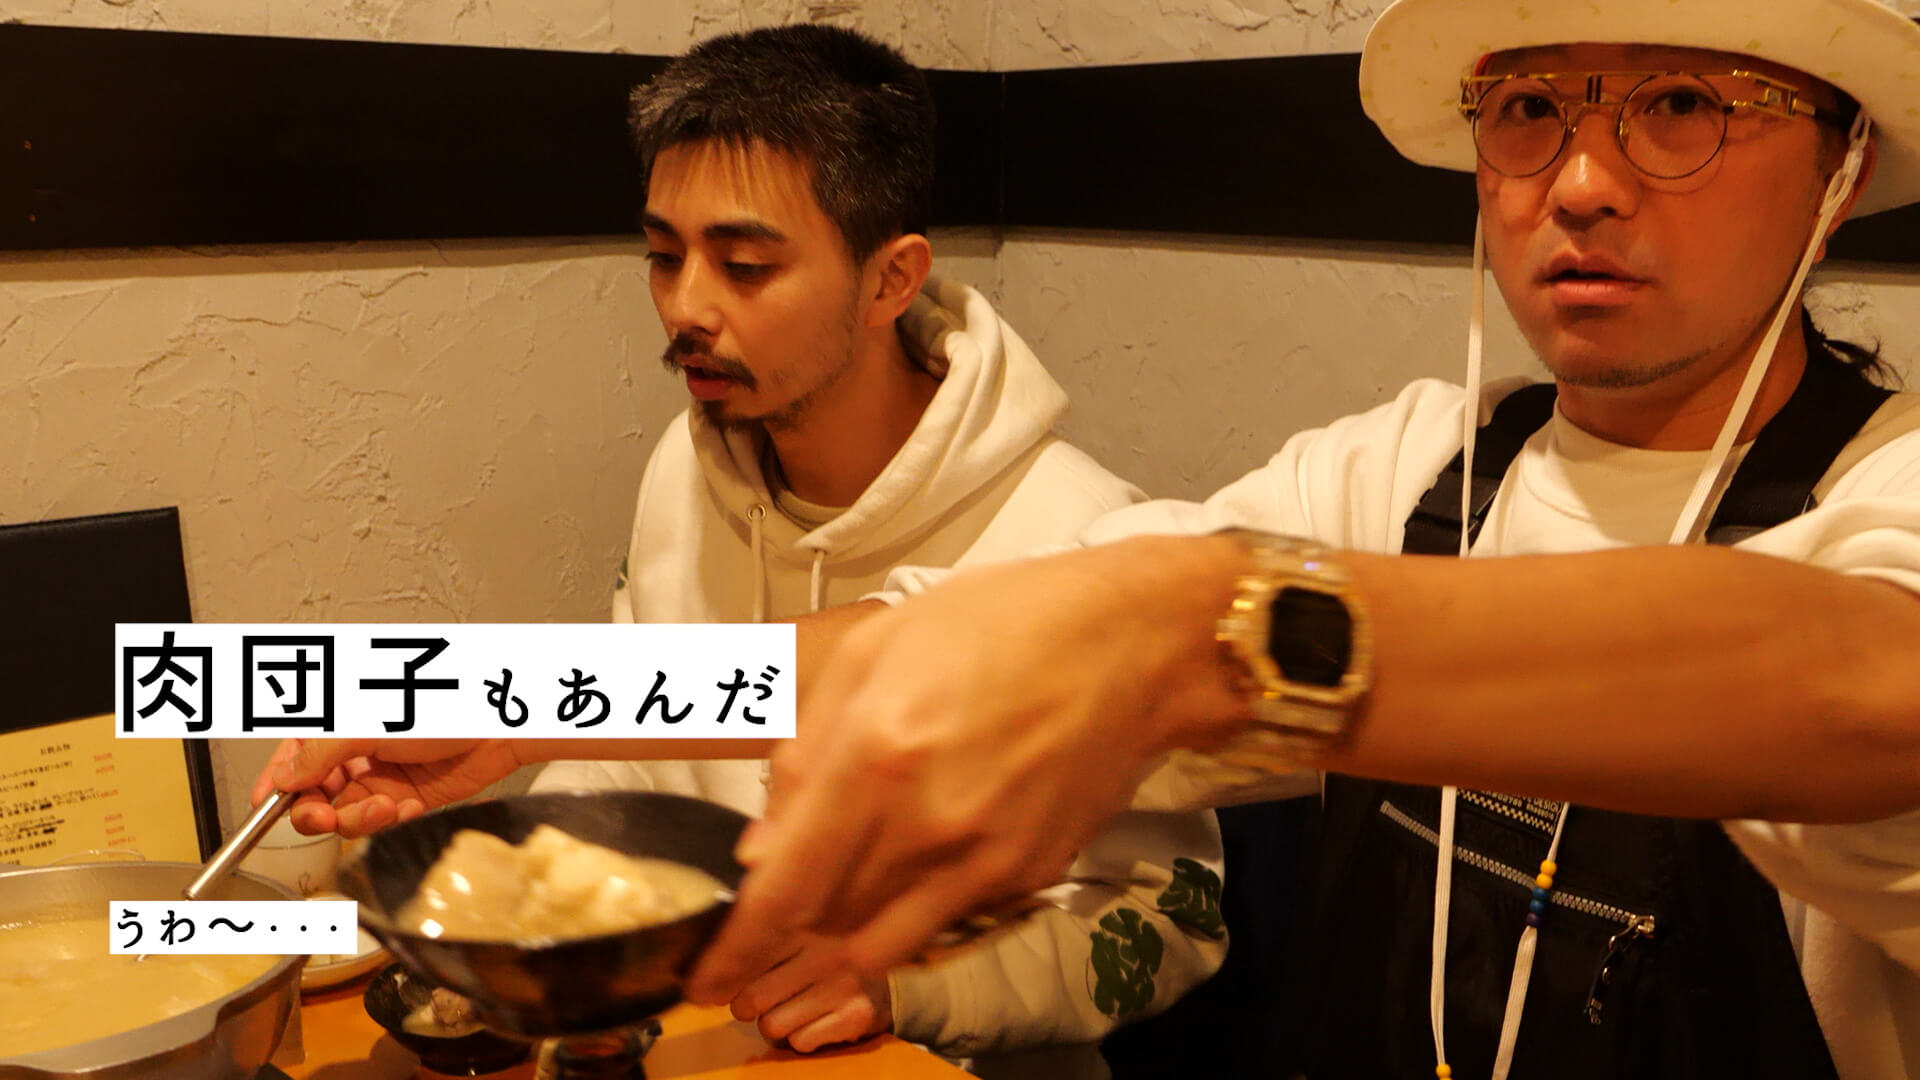 フッドめし - HoodFood #08 Kick a Show × FNCY music200502_hoodfood8_5